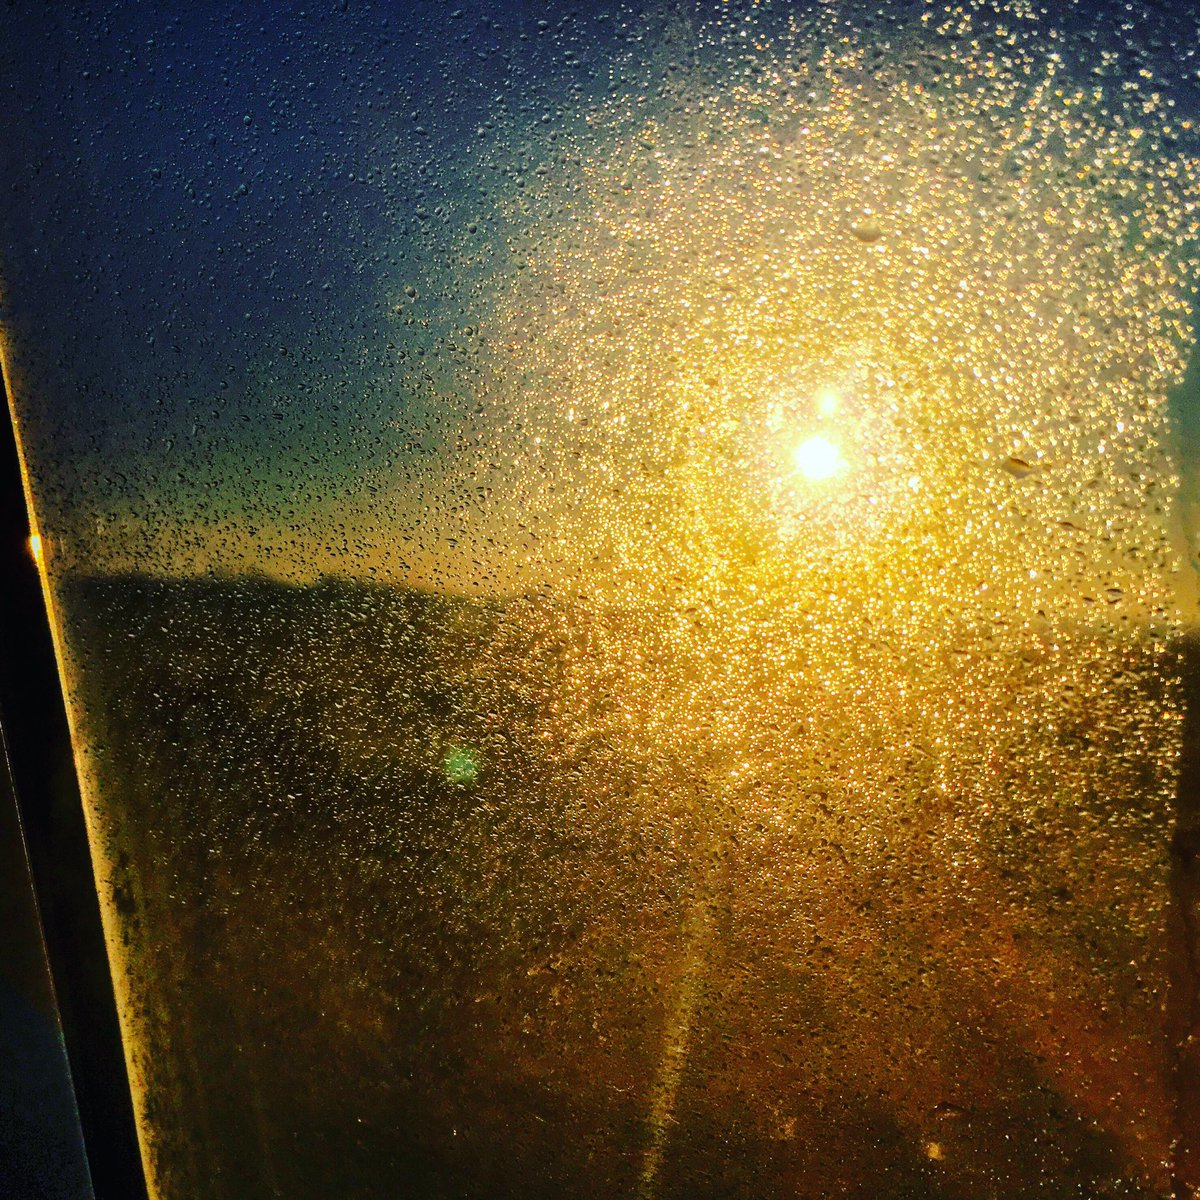 Next time I Tweet I'll be (hopefully) in Brussels. They hardly let me out... no travel without drama #sunrise https://t.co/oViu3rbvmB